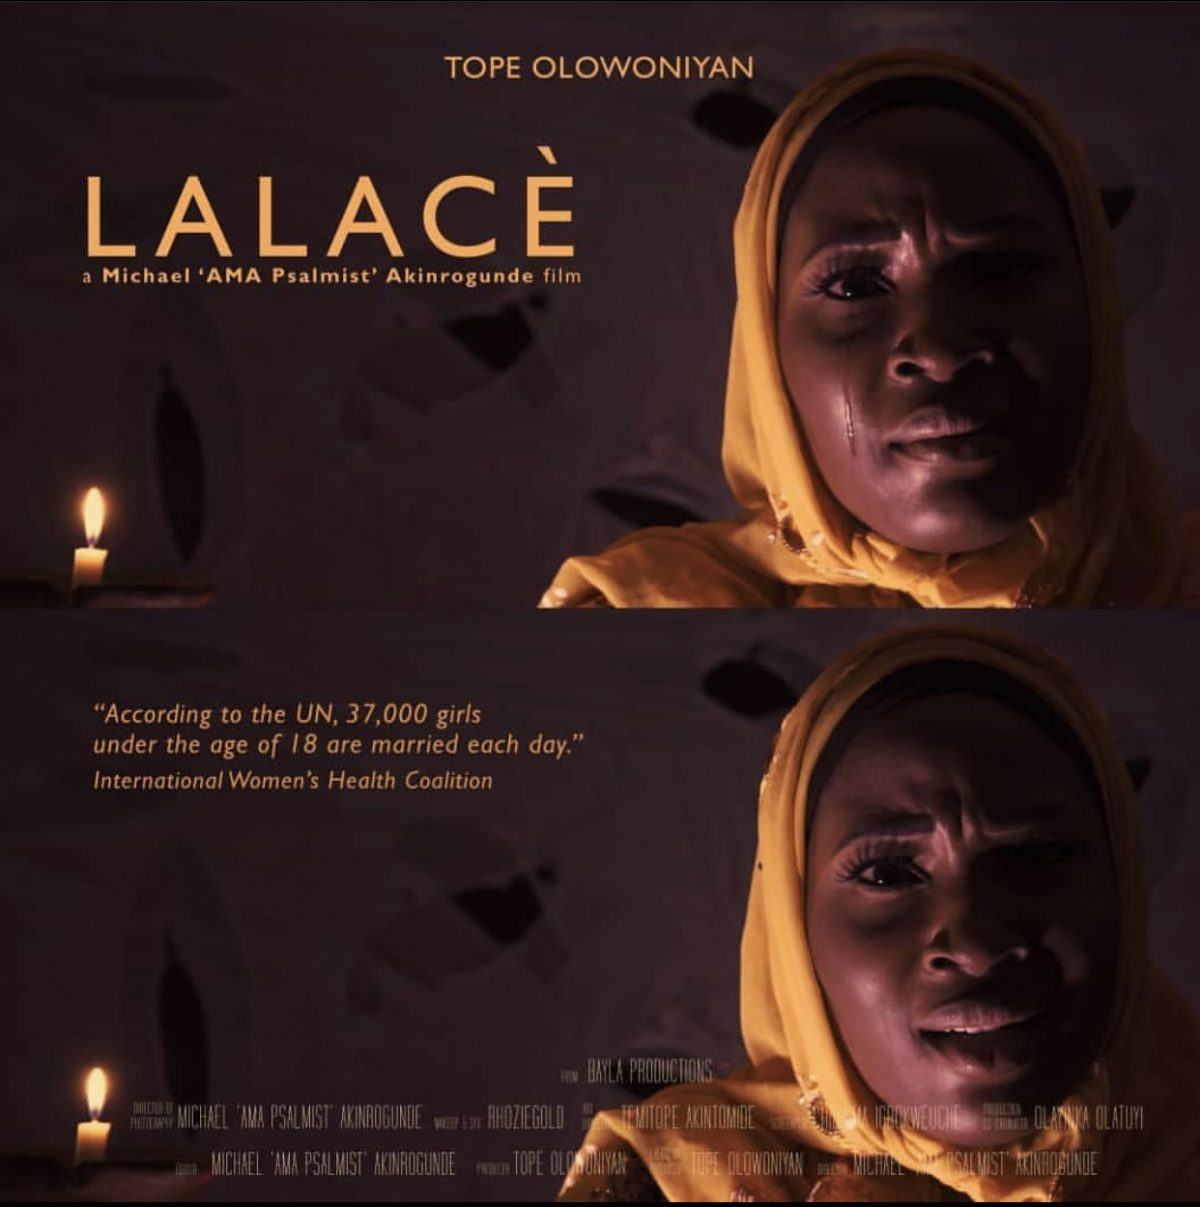 LALACE